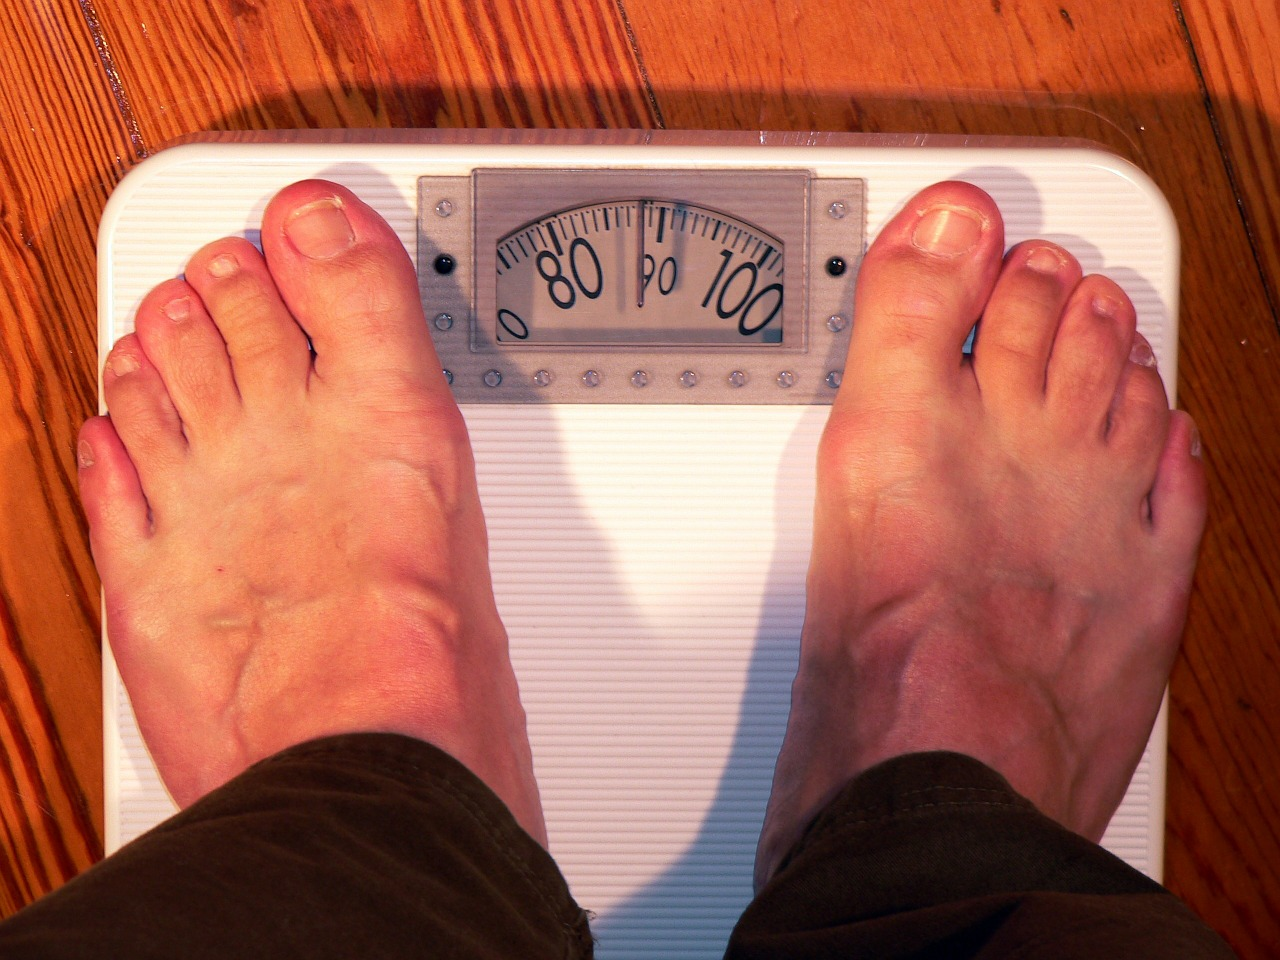 weighing scale measurement